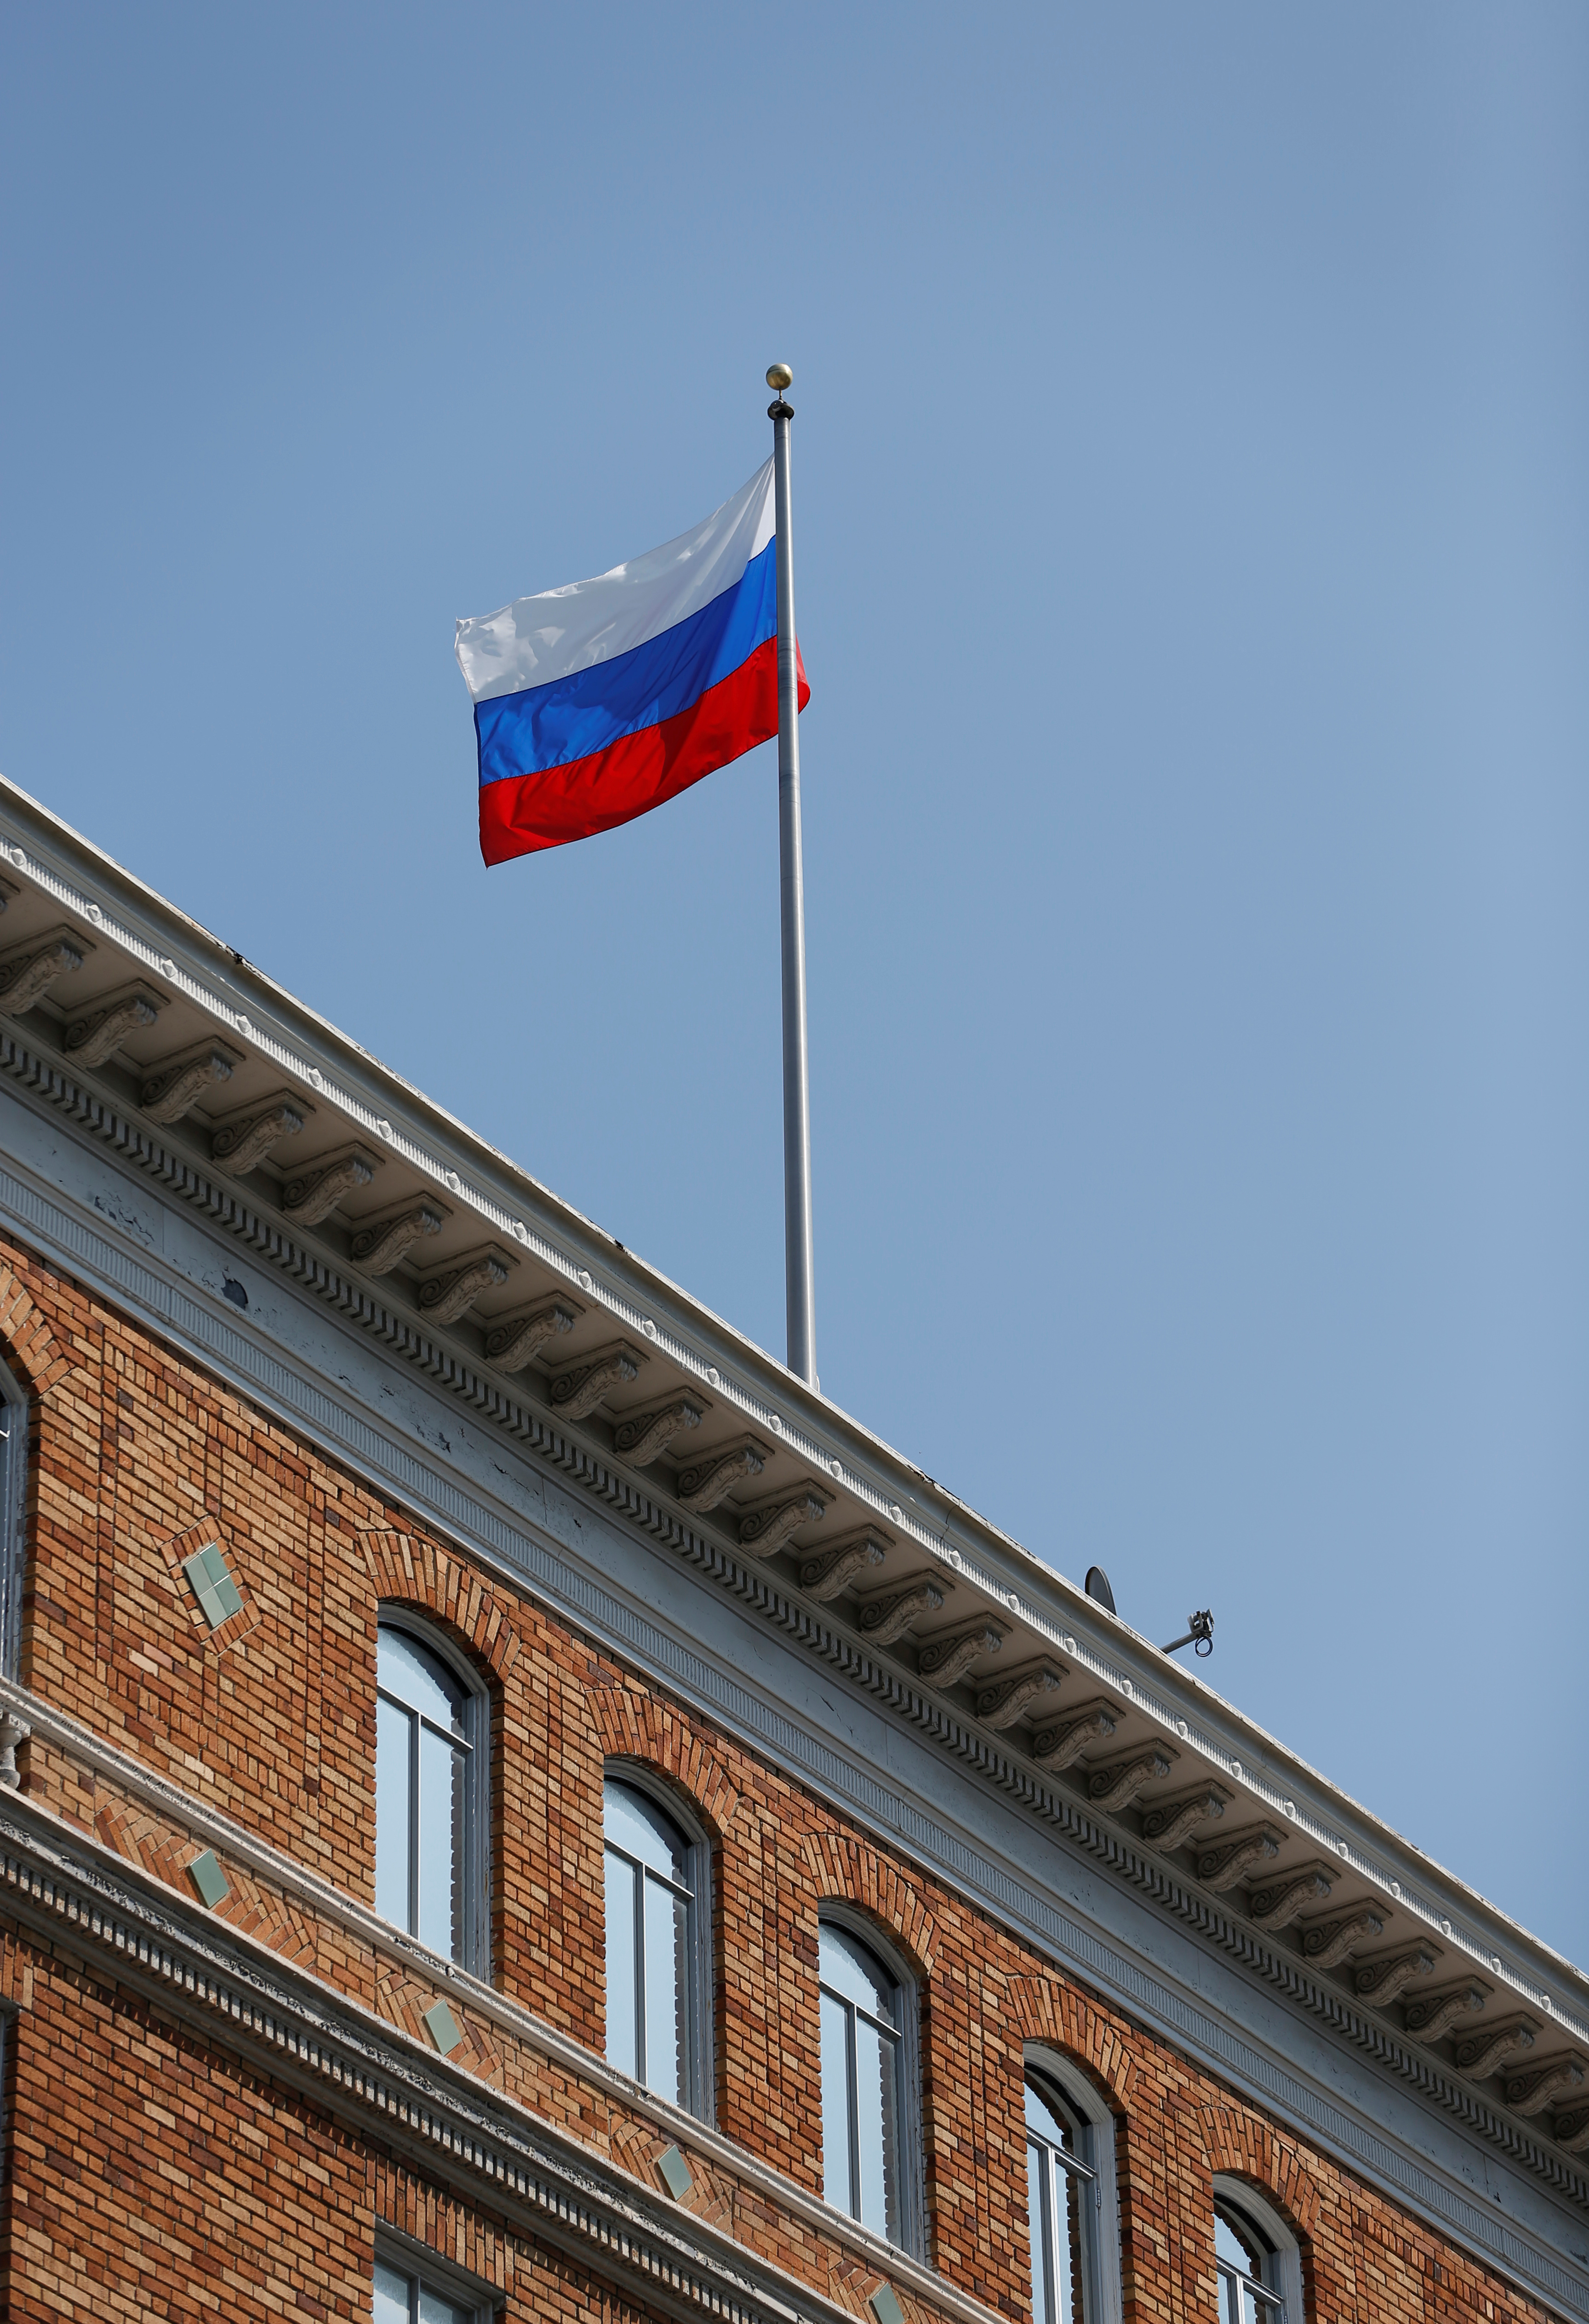 The Russian flag waves in the wind on the rooftop of the Consulate General of Russia in San Francisco, Calif., on Aug. 31, 2017.   (REUTERS/Stephen Lam)